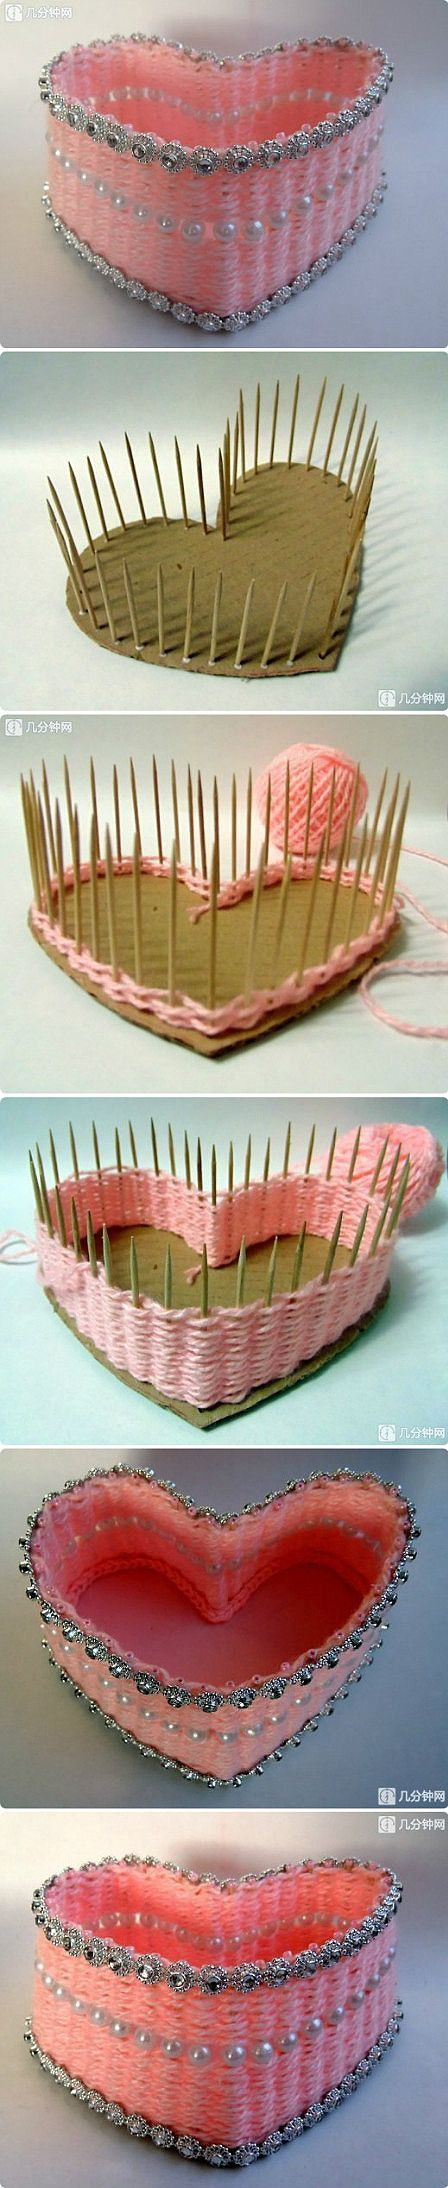 Yarn crafted heart using a heart shaped piece of cardboard (or foamboard) toothpicks and a small amount of yarn, and decorative embellishments!: